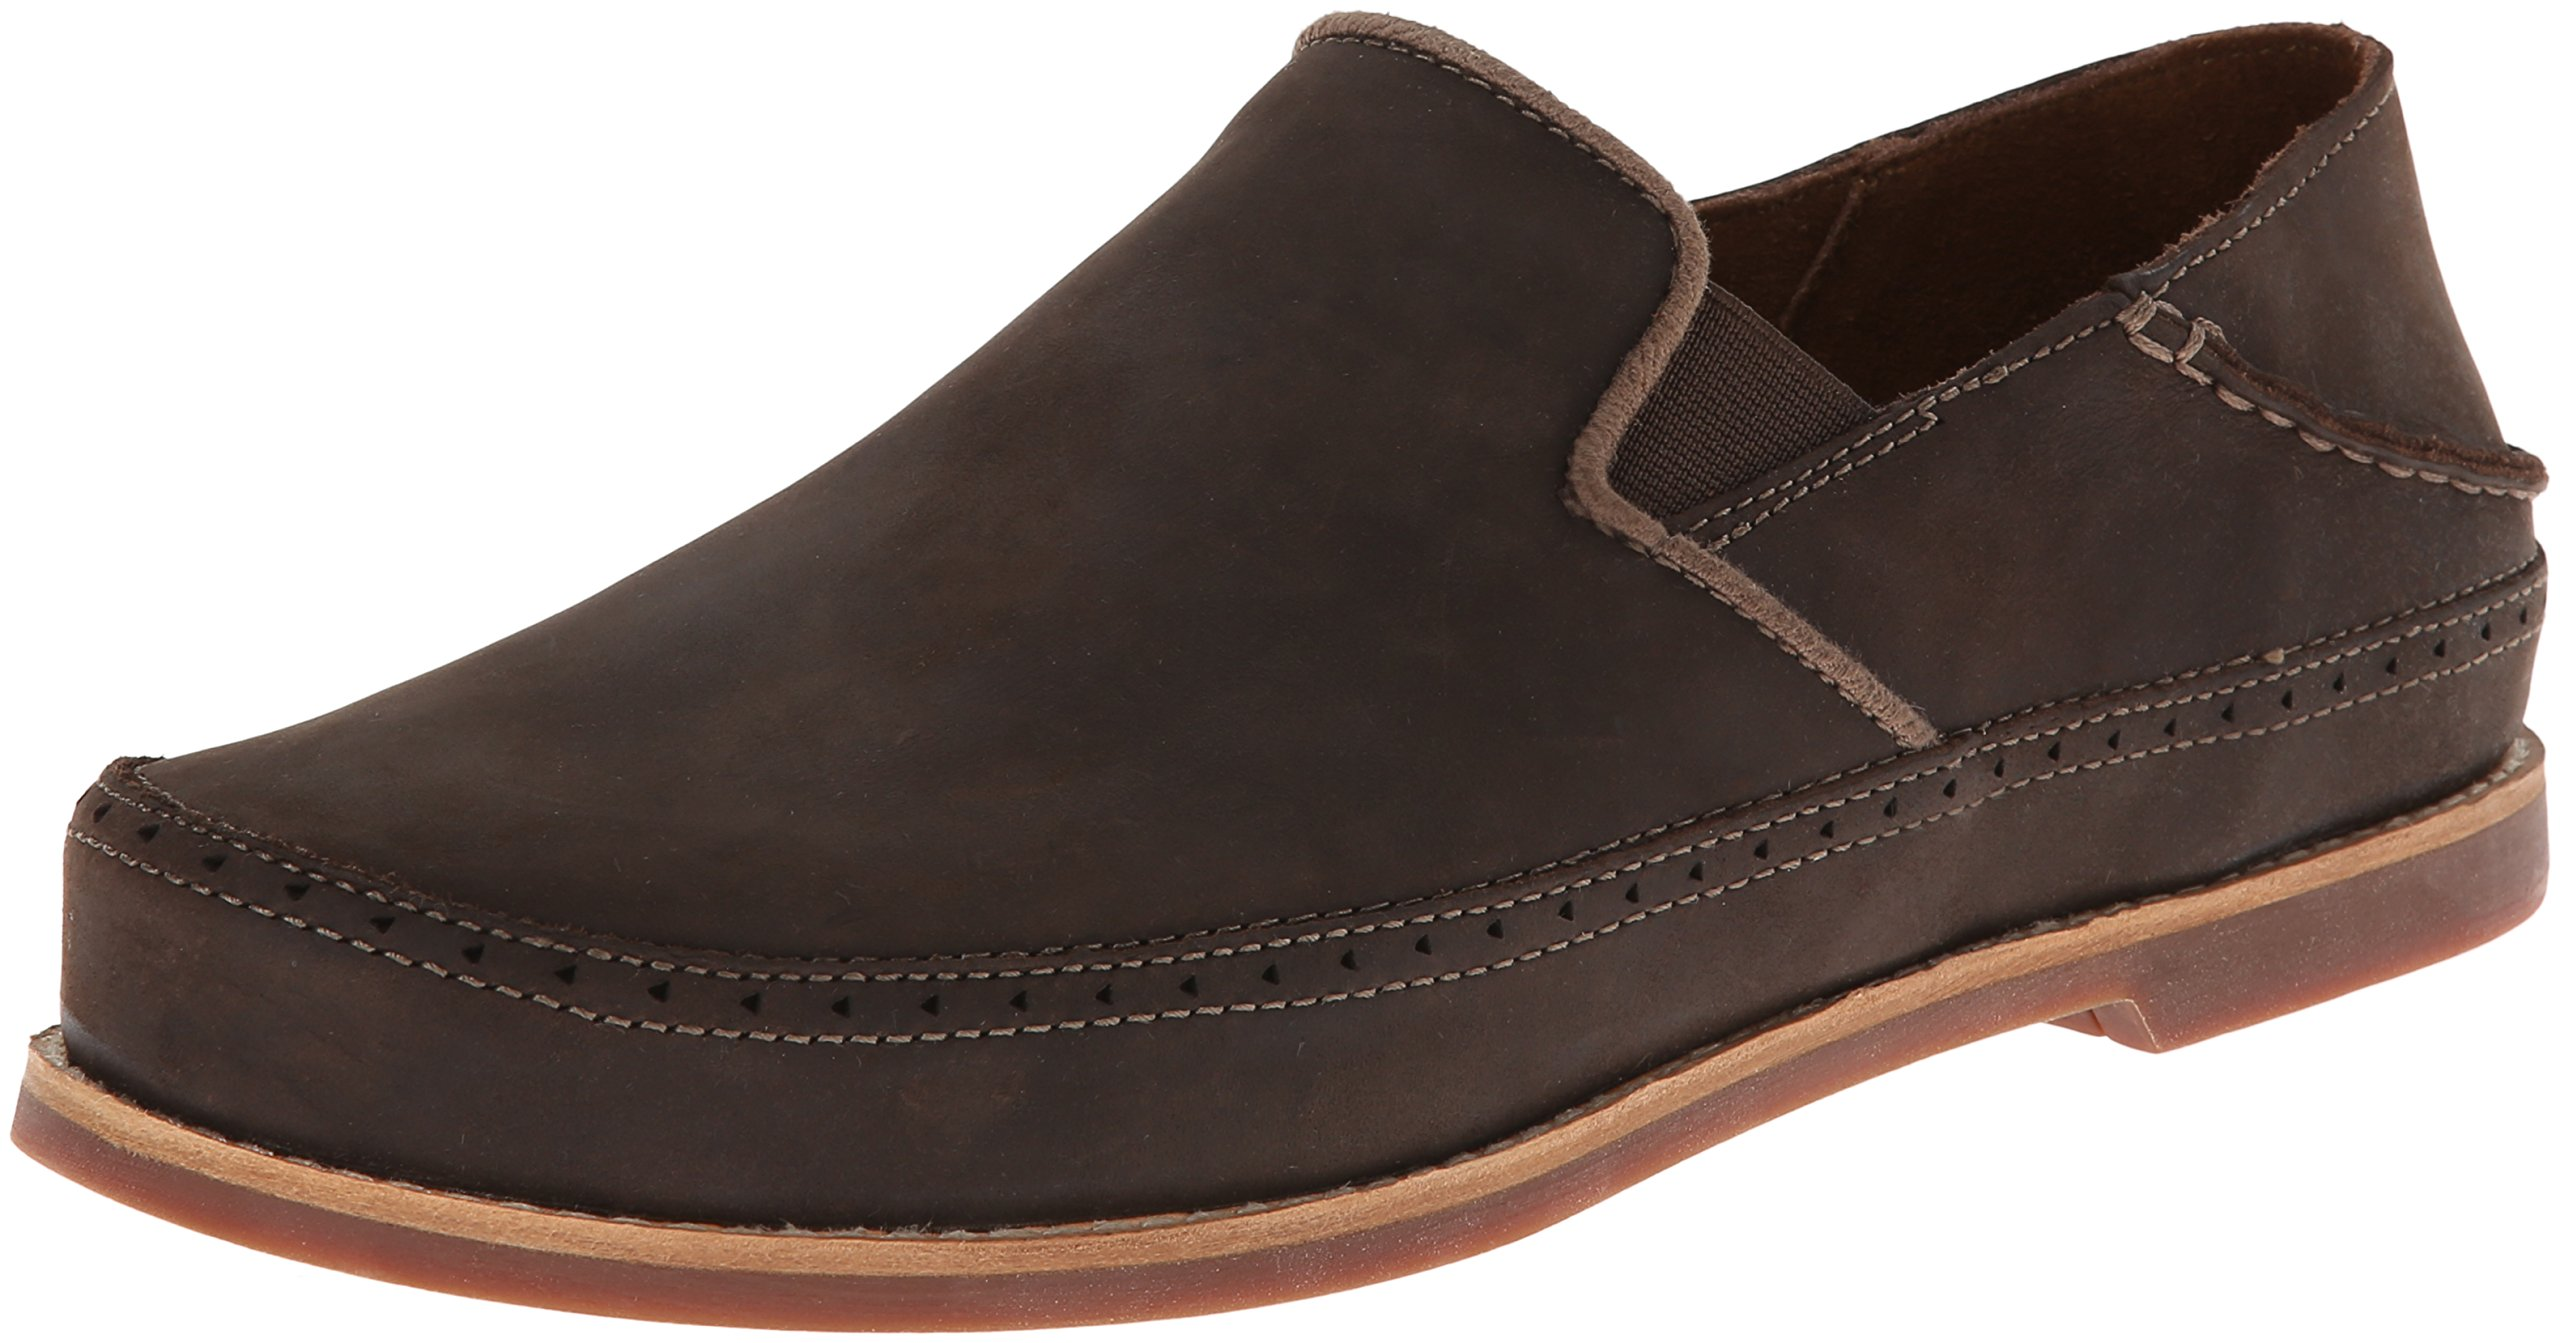 OluKai Men's Honolulu Slip-On Dark Wood/Mustang Loafer 11 D - Medium